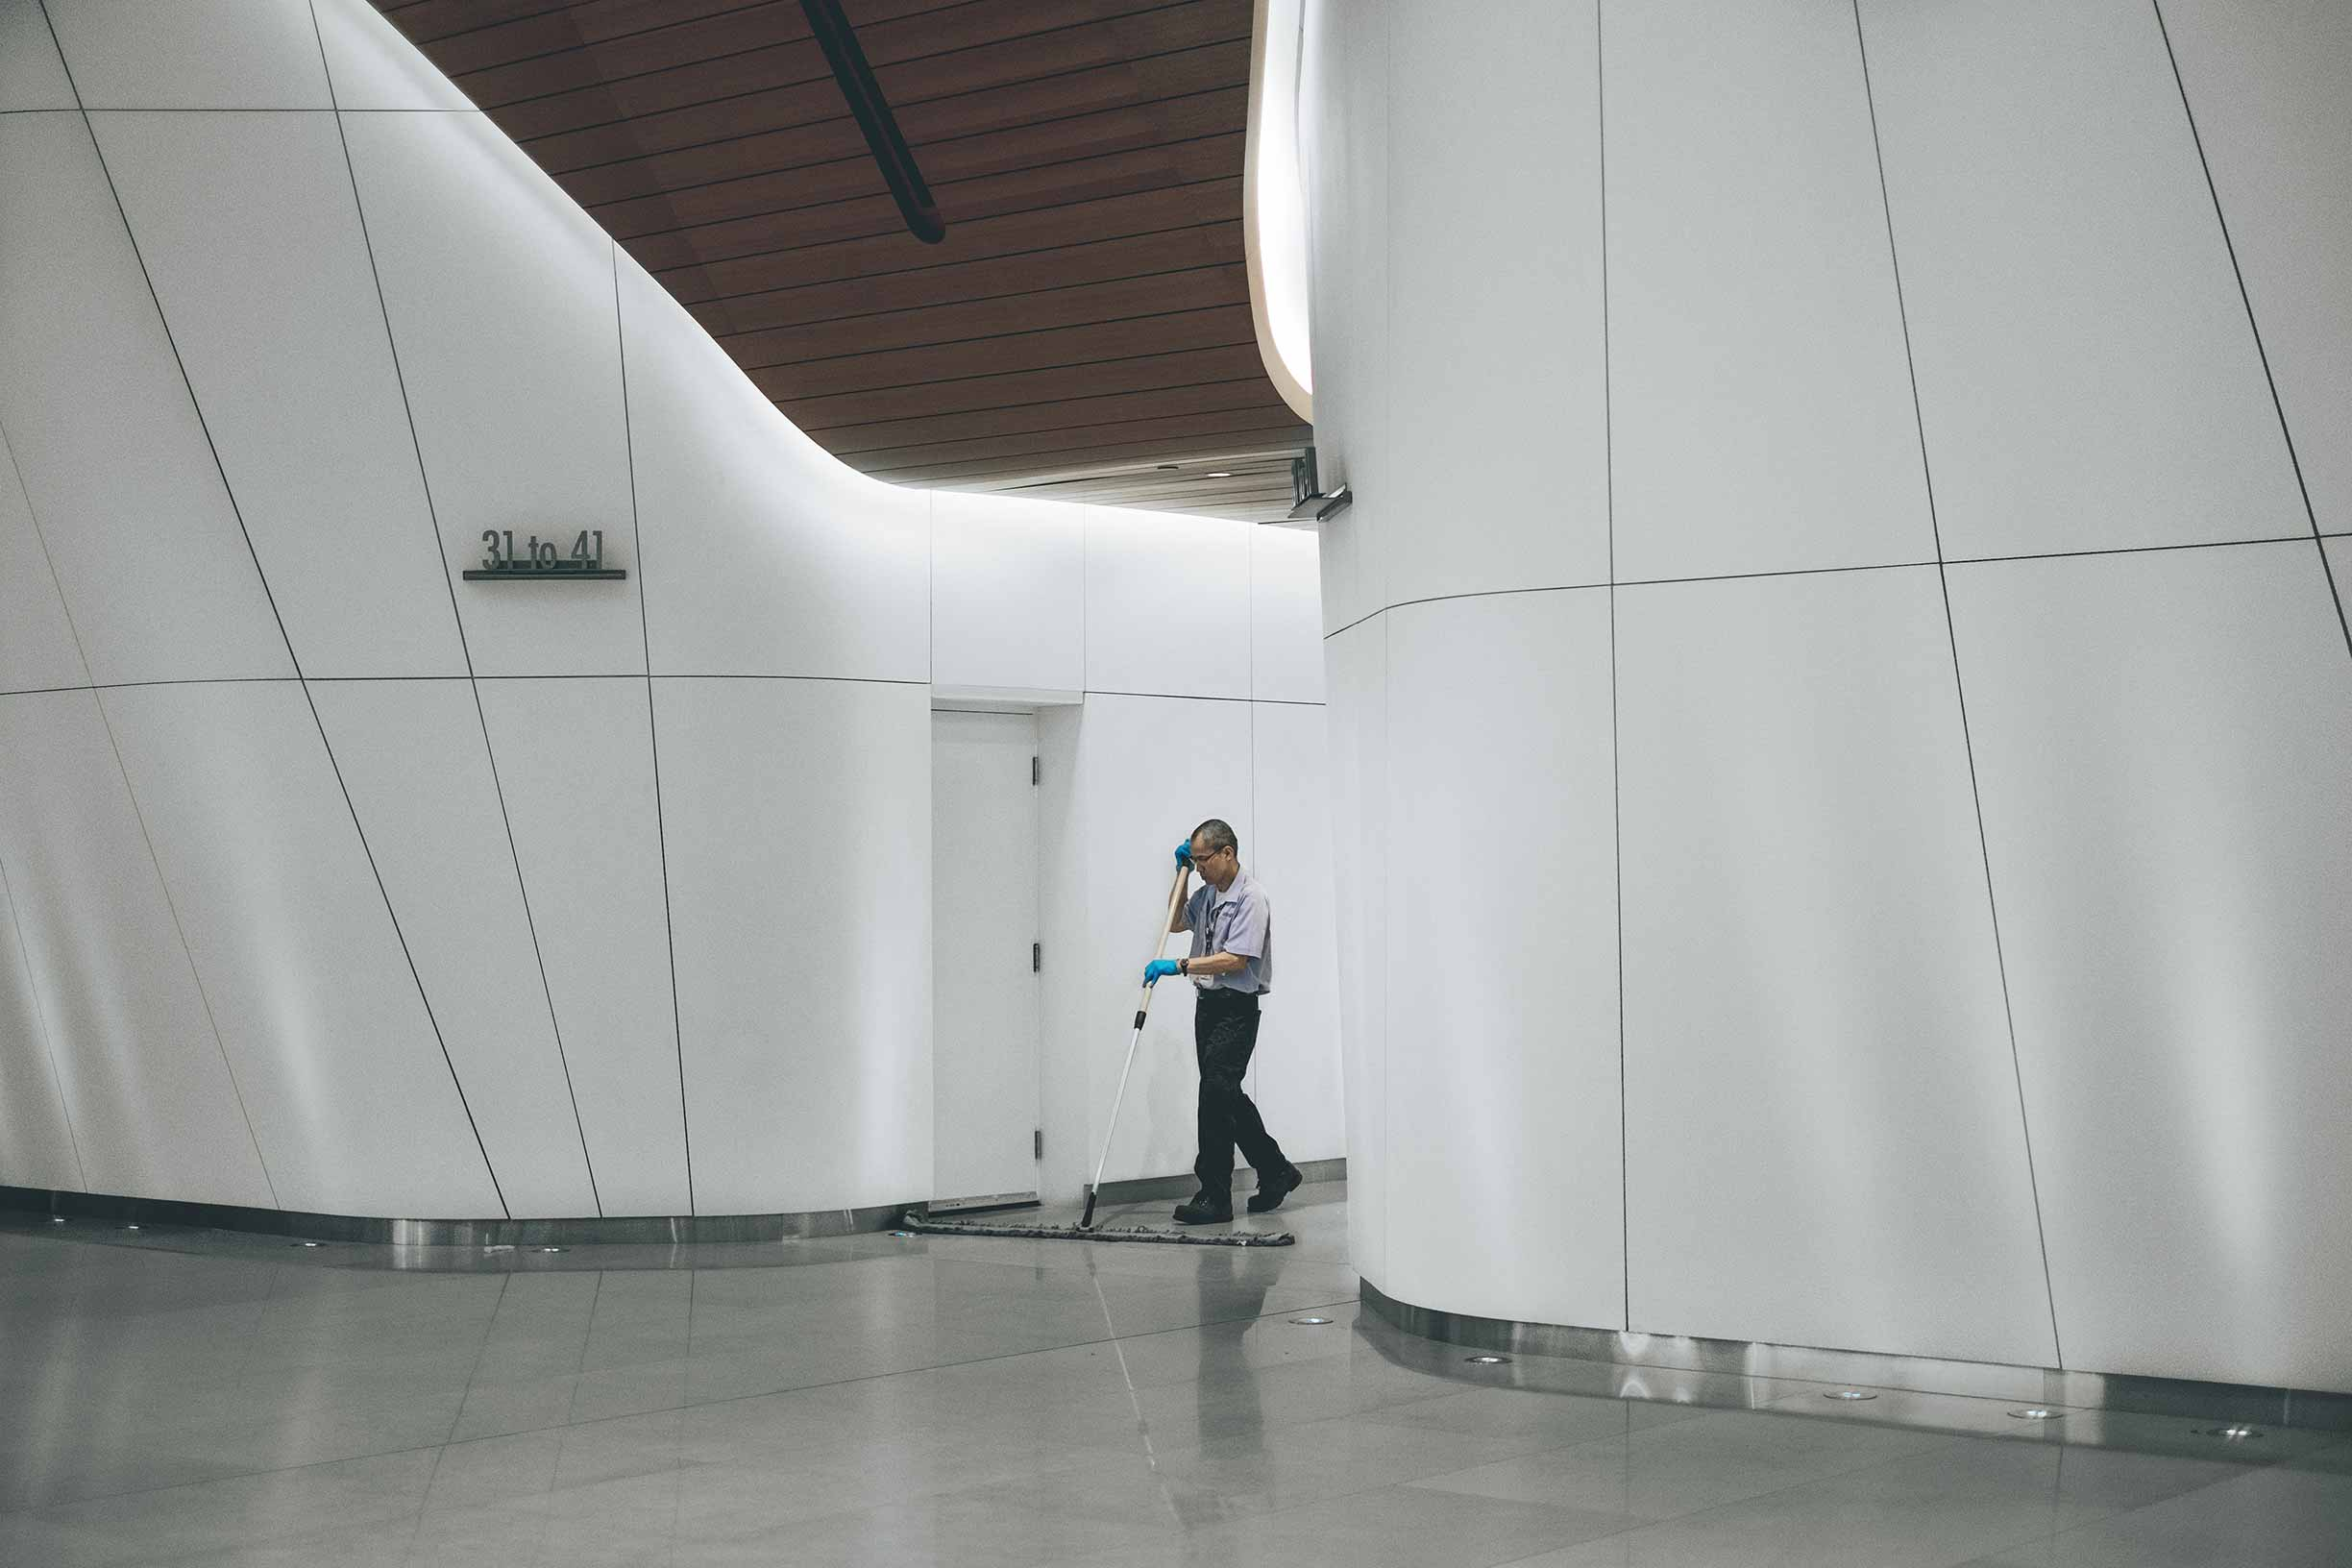 Employee Cleaning Services Professional